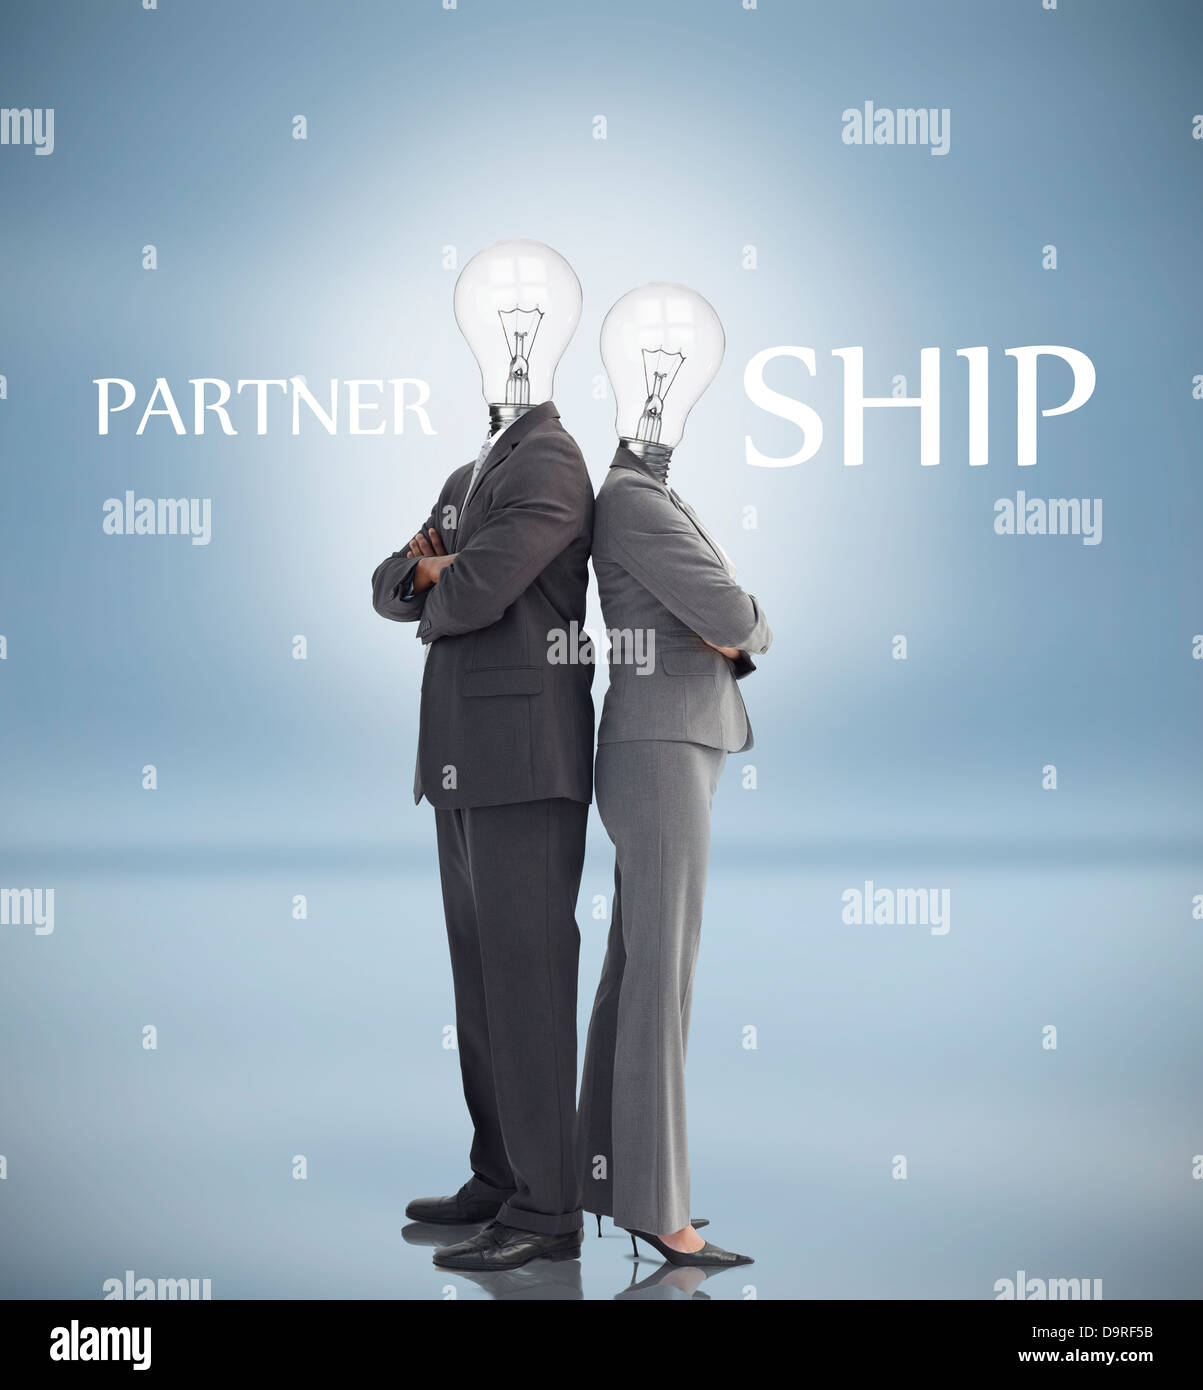 Business people with light bulbs instead of heads and partnership text - Stock Image